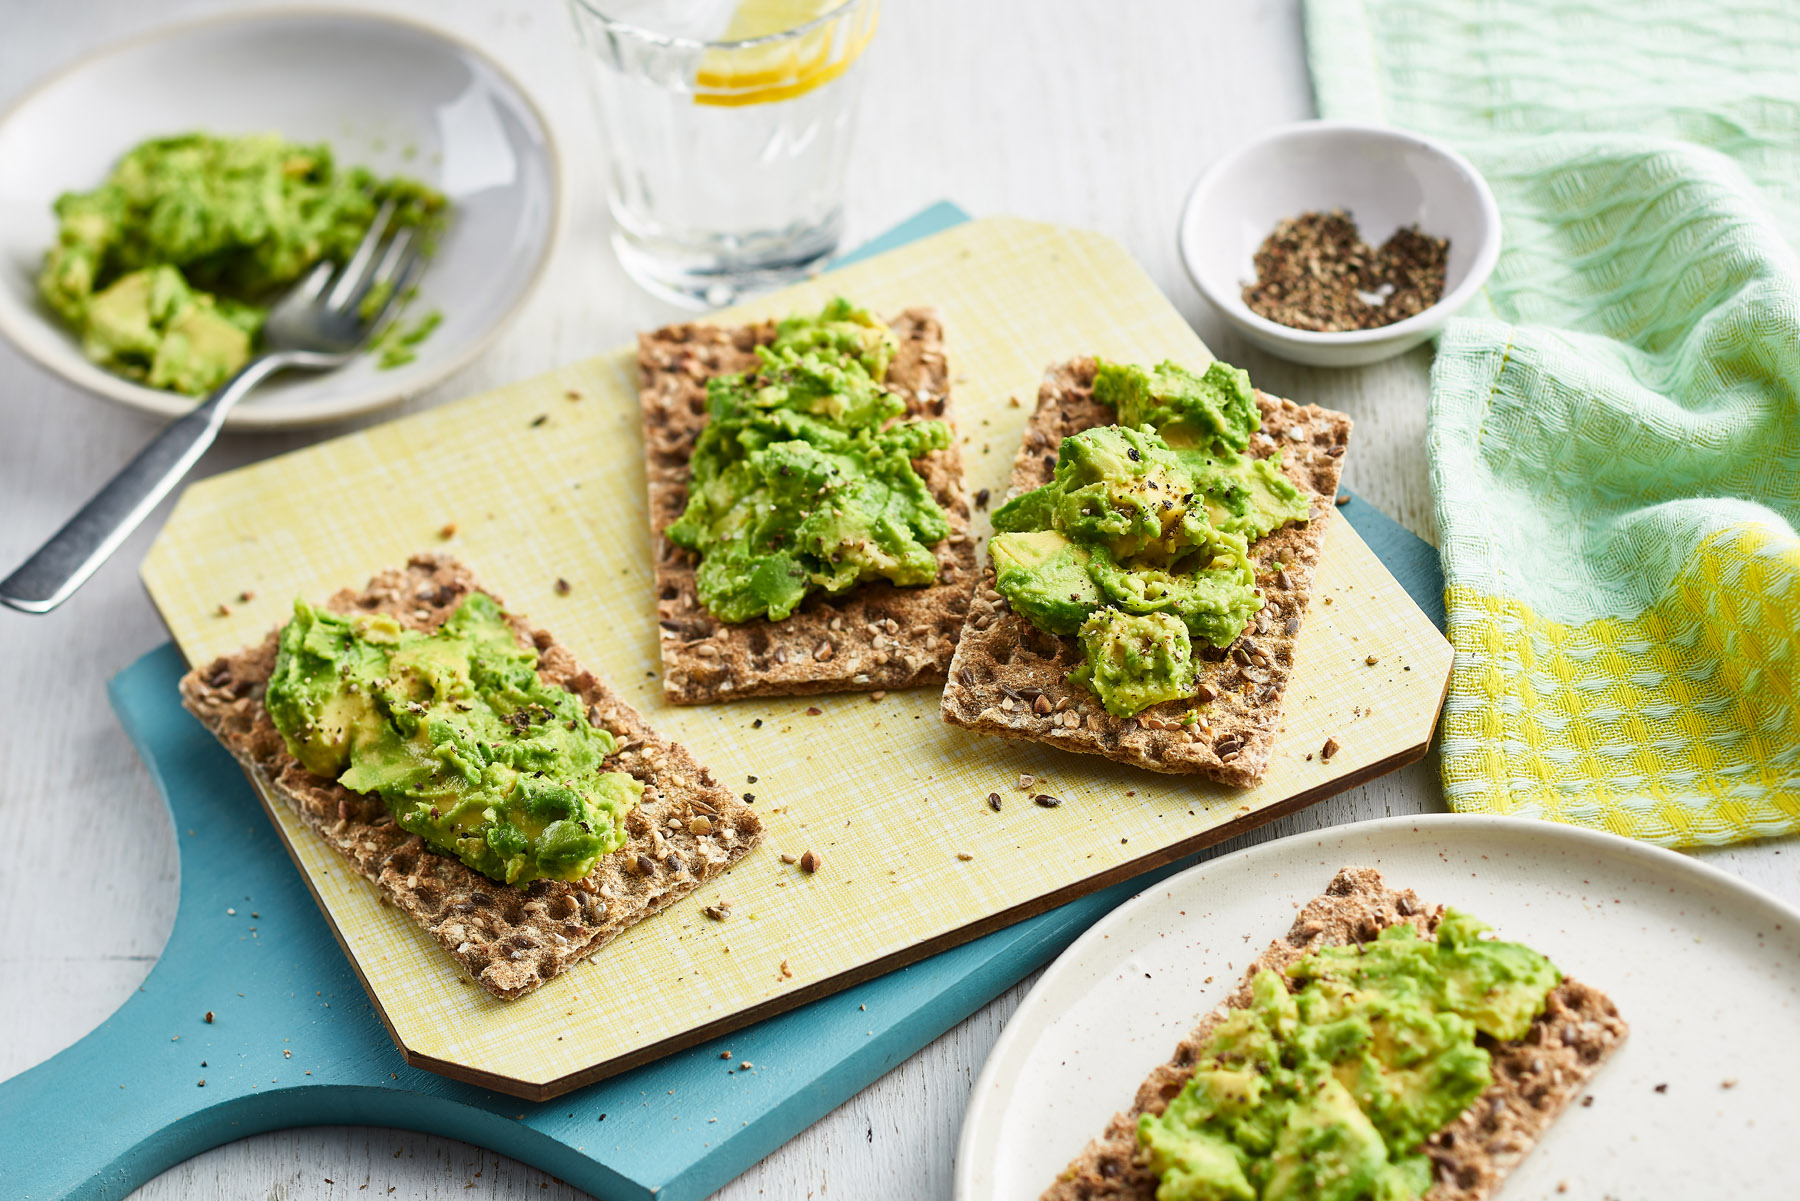 Mashed avocado on Ryvita